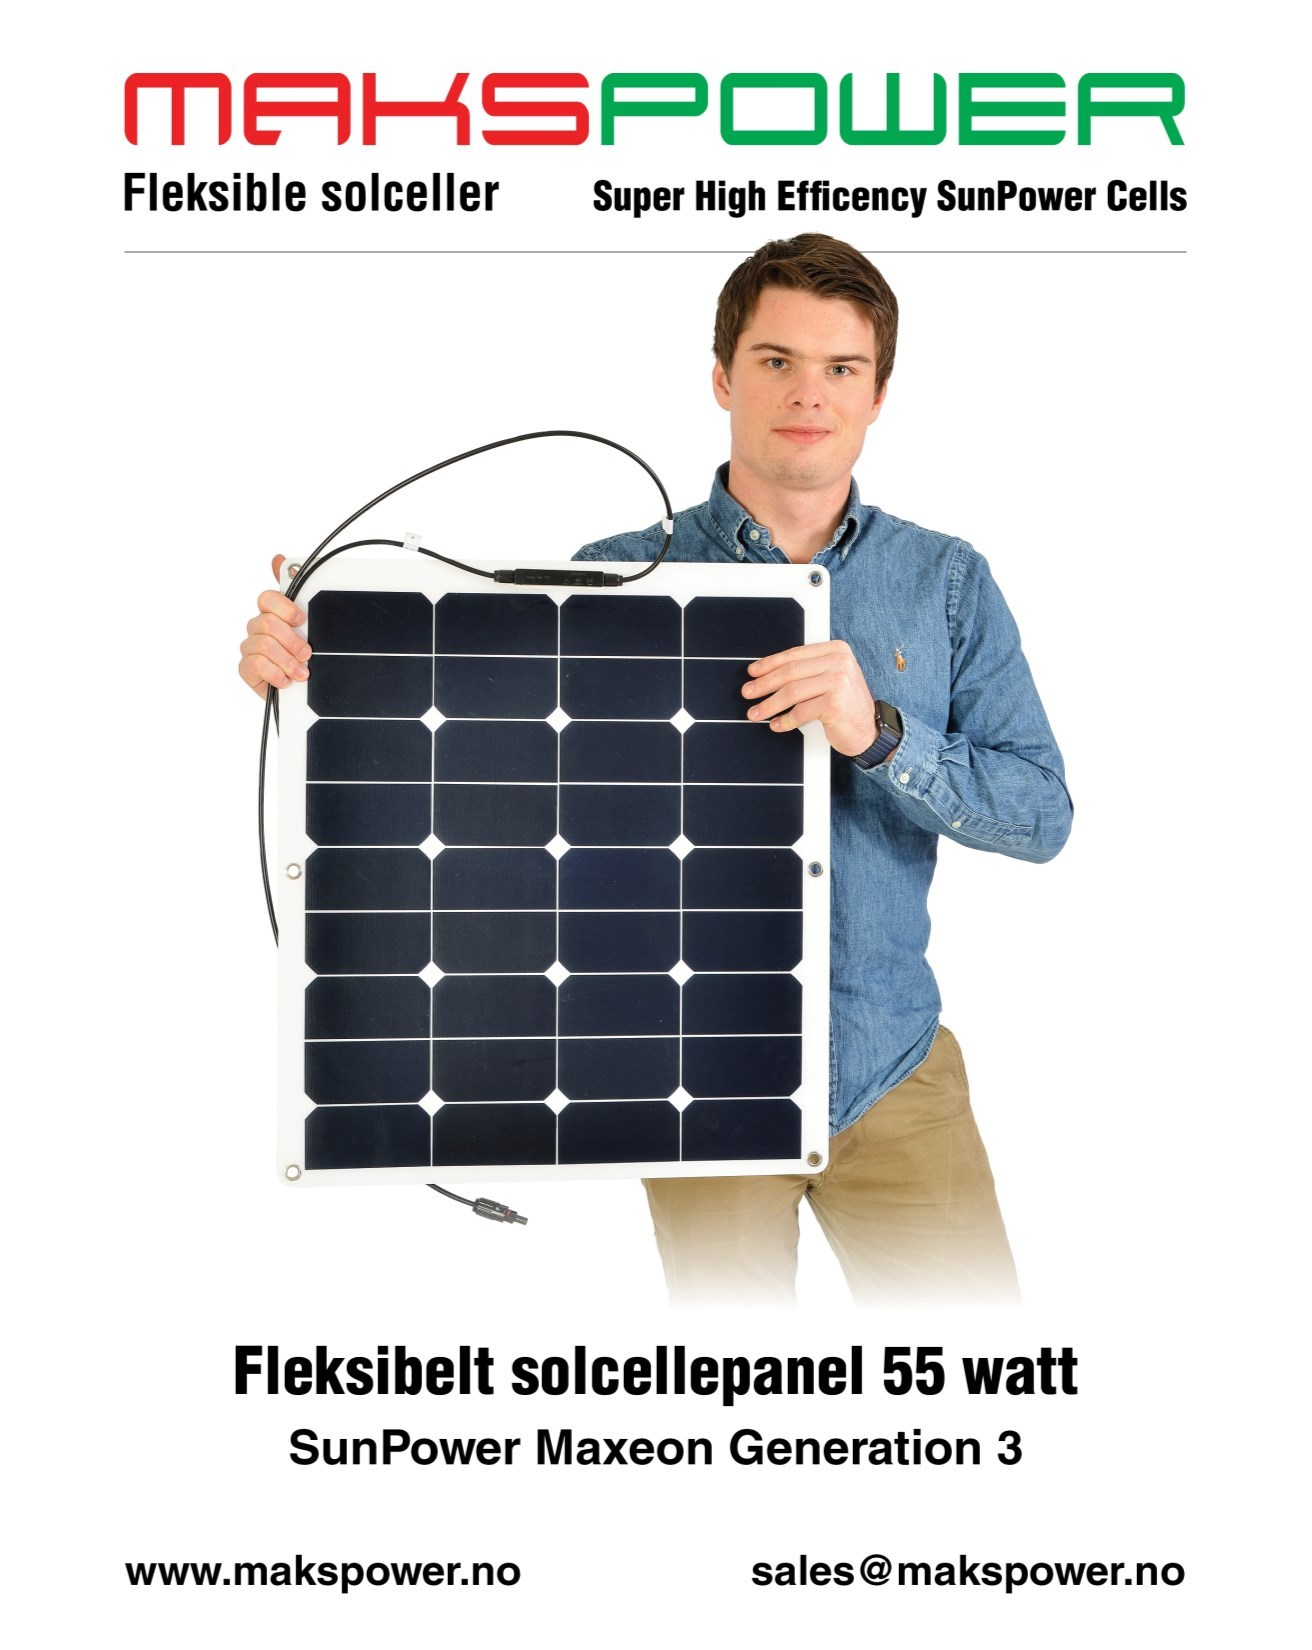 Makspower 55 Watt Fleksibelt solcellepanel SunPower Maxeon generation 3